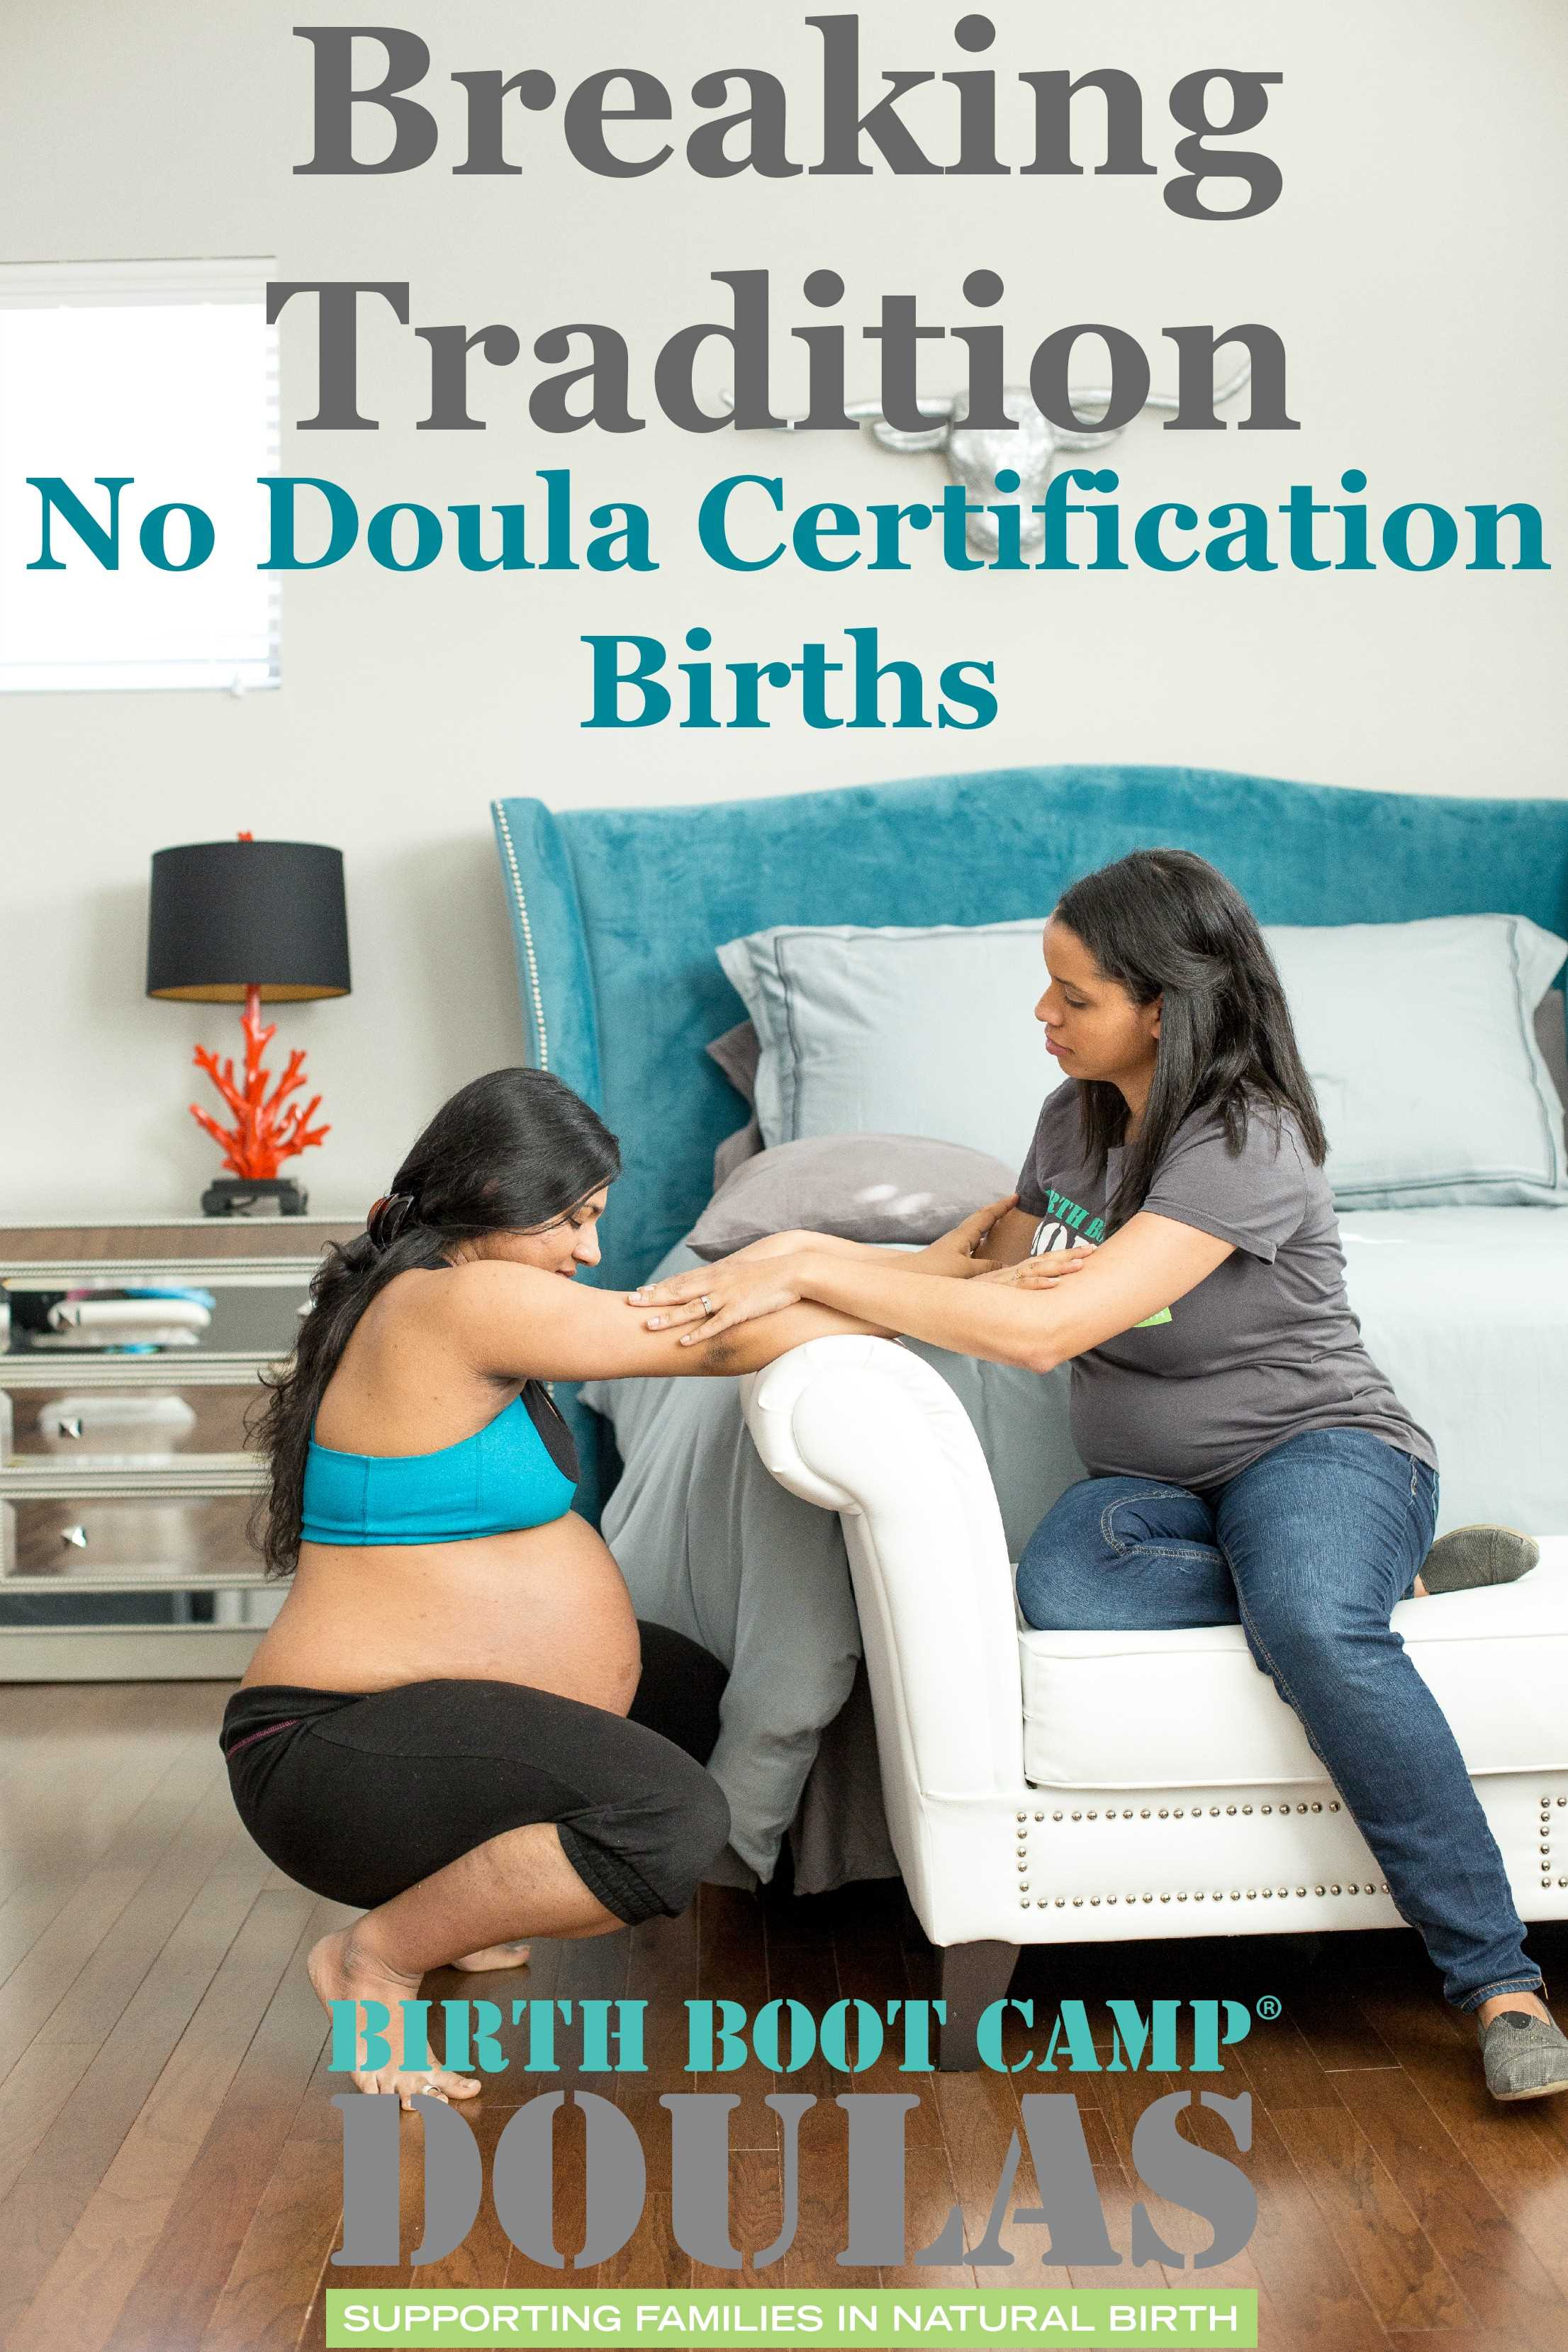 No Certification Births For Birth Boot Camp DOULAS